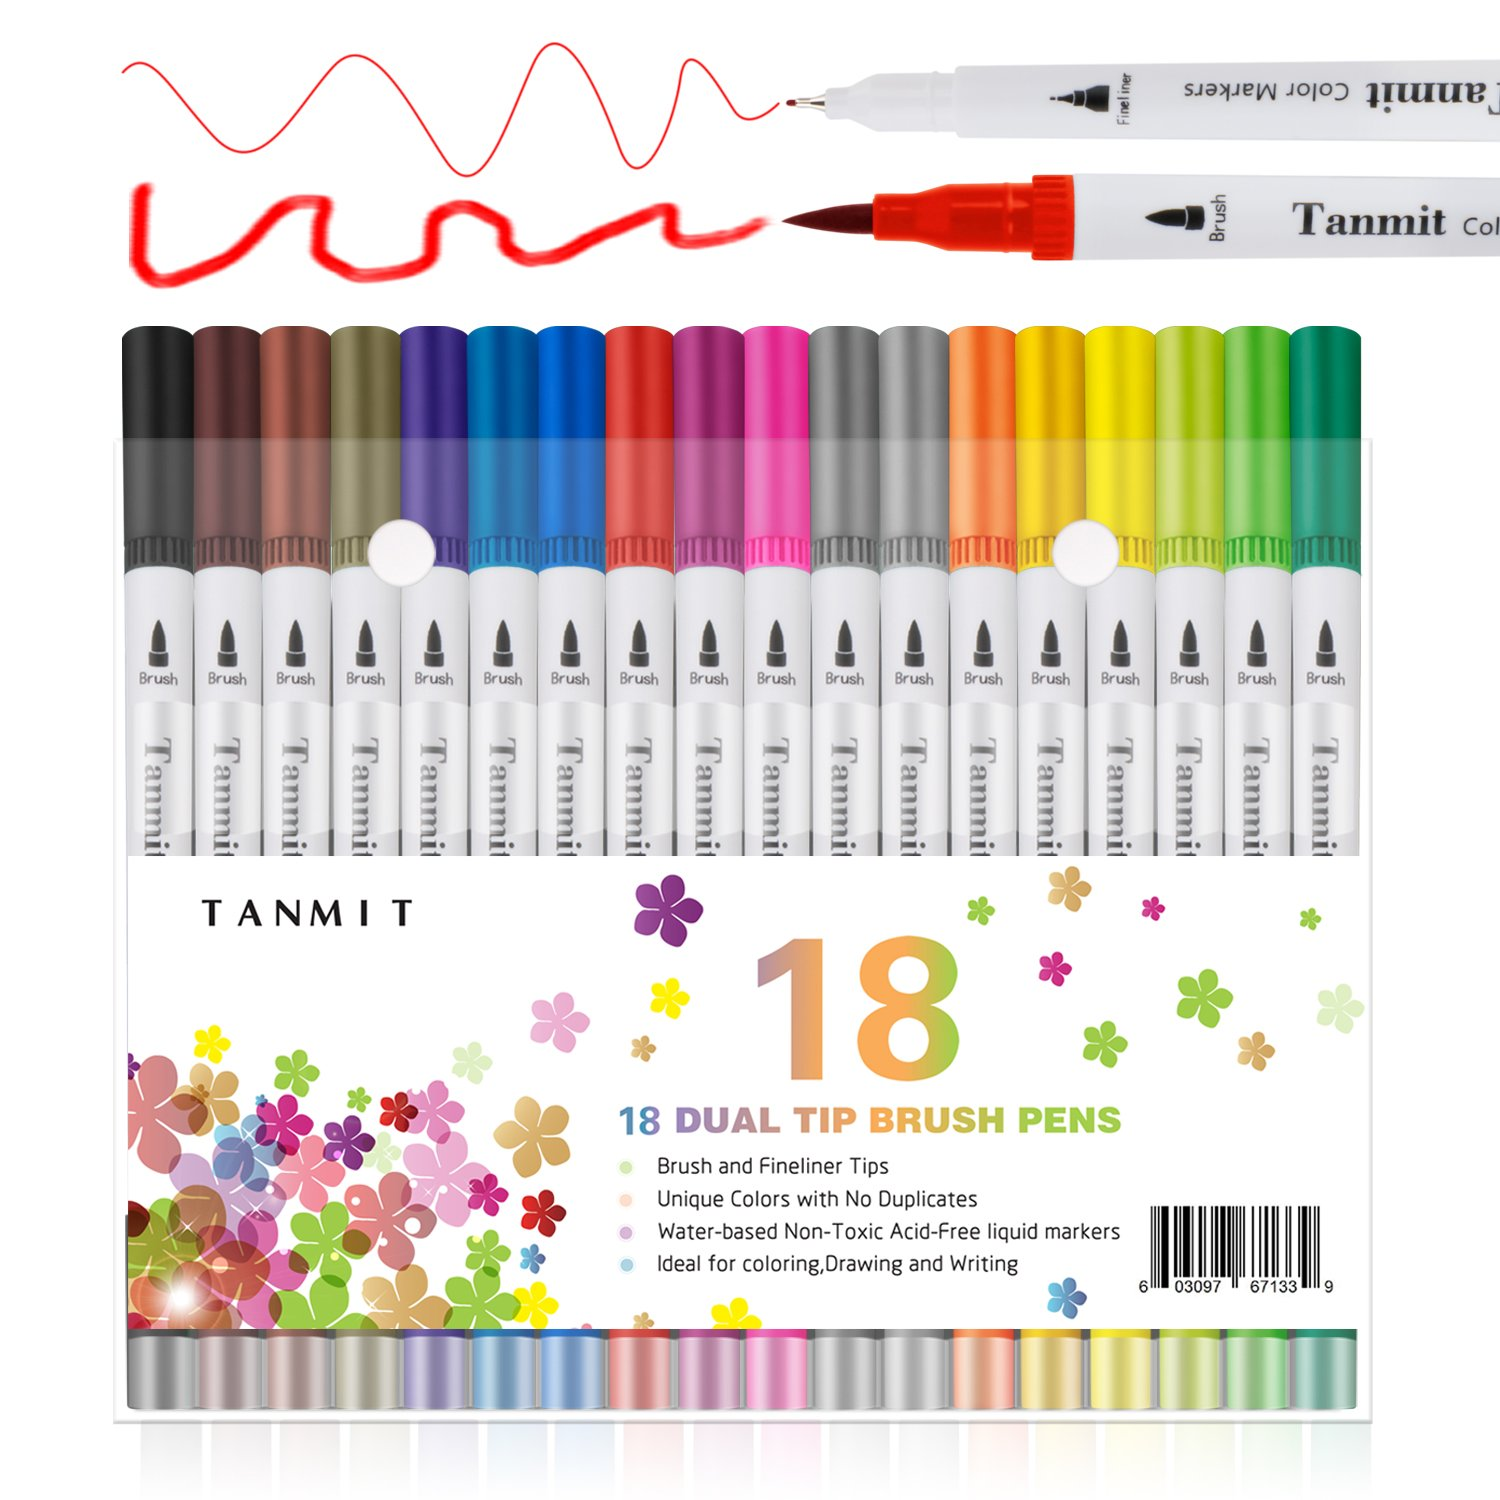 Dual Brush Pens Art Marker Fine Tip, Colored Fine Point Pens Calligraphy Bullet Journal Dual Marker for Adults Coloring Book Writing Drawing Planner Taking Note(18 Colors Art Supplies) DRBP 4336948024